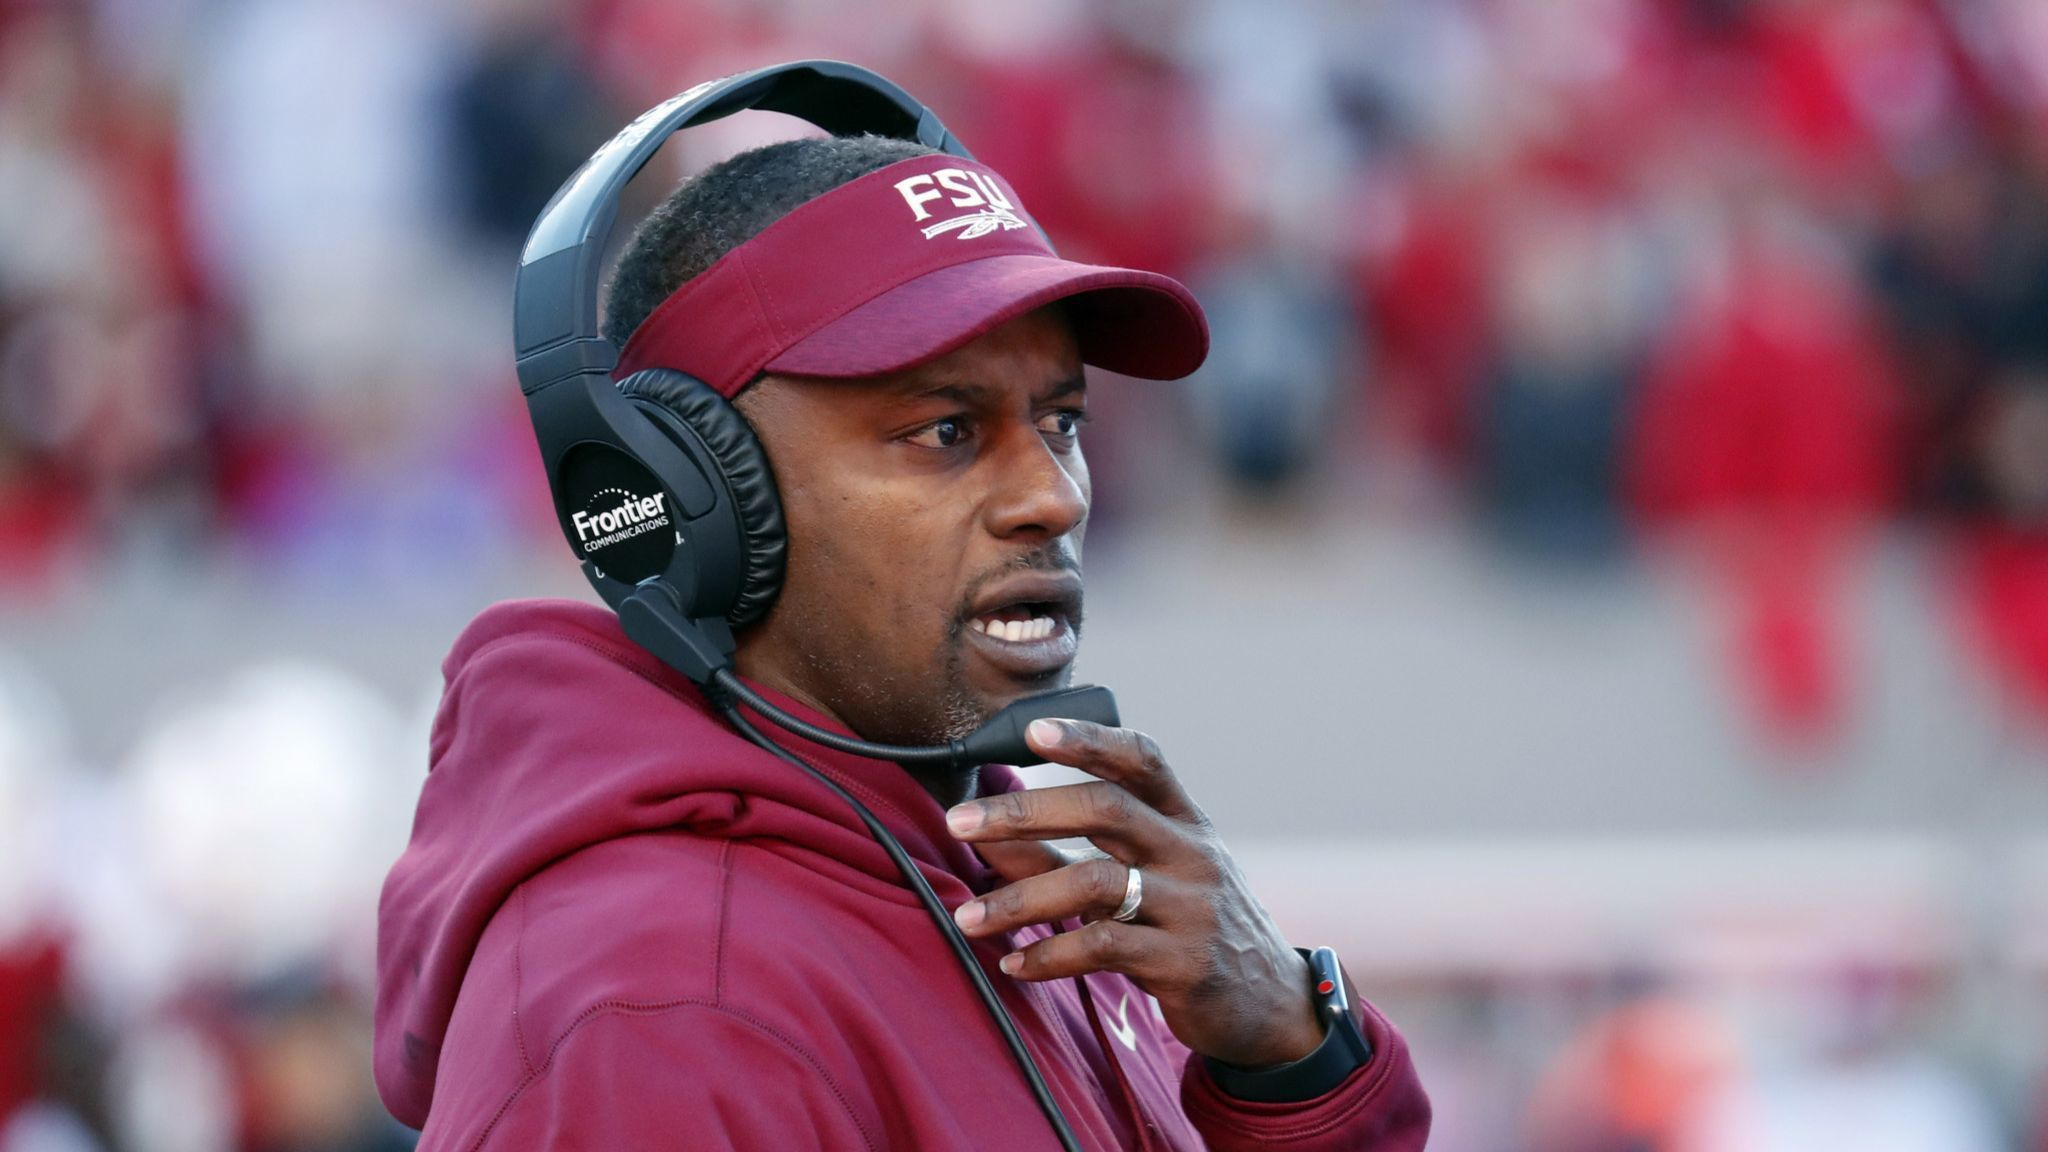 FSU players, coaches working to settle into new roles this spring